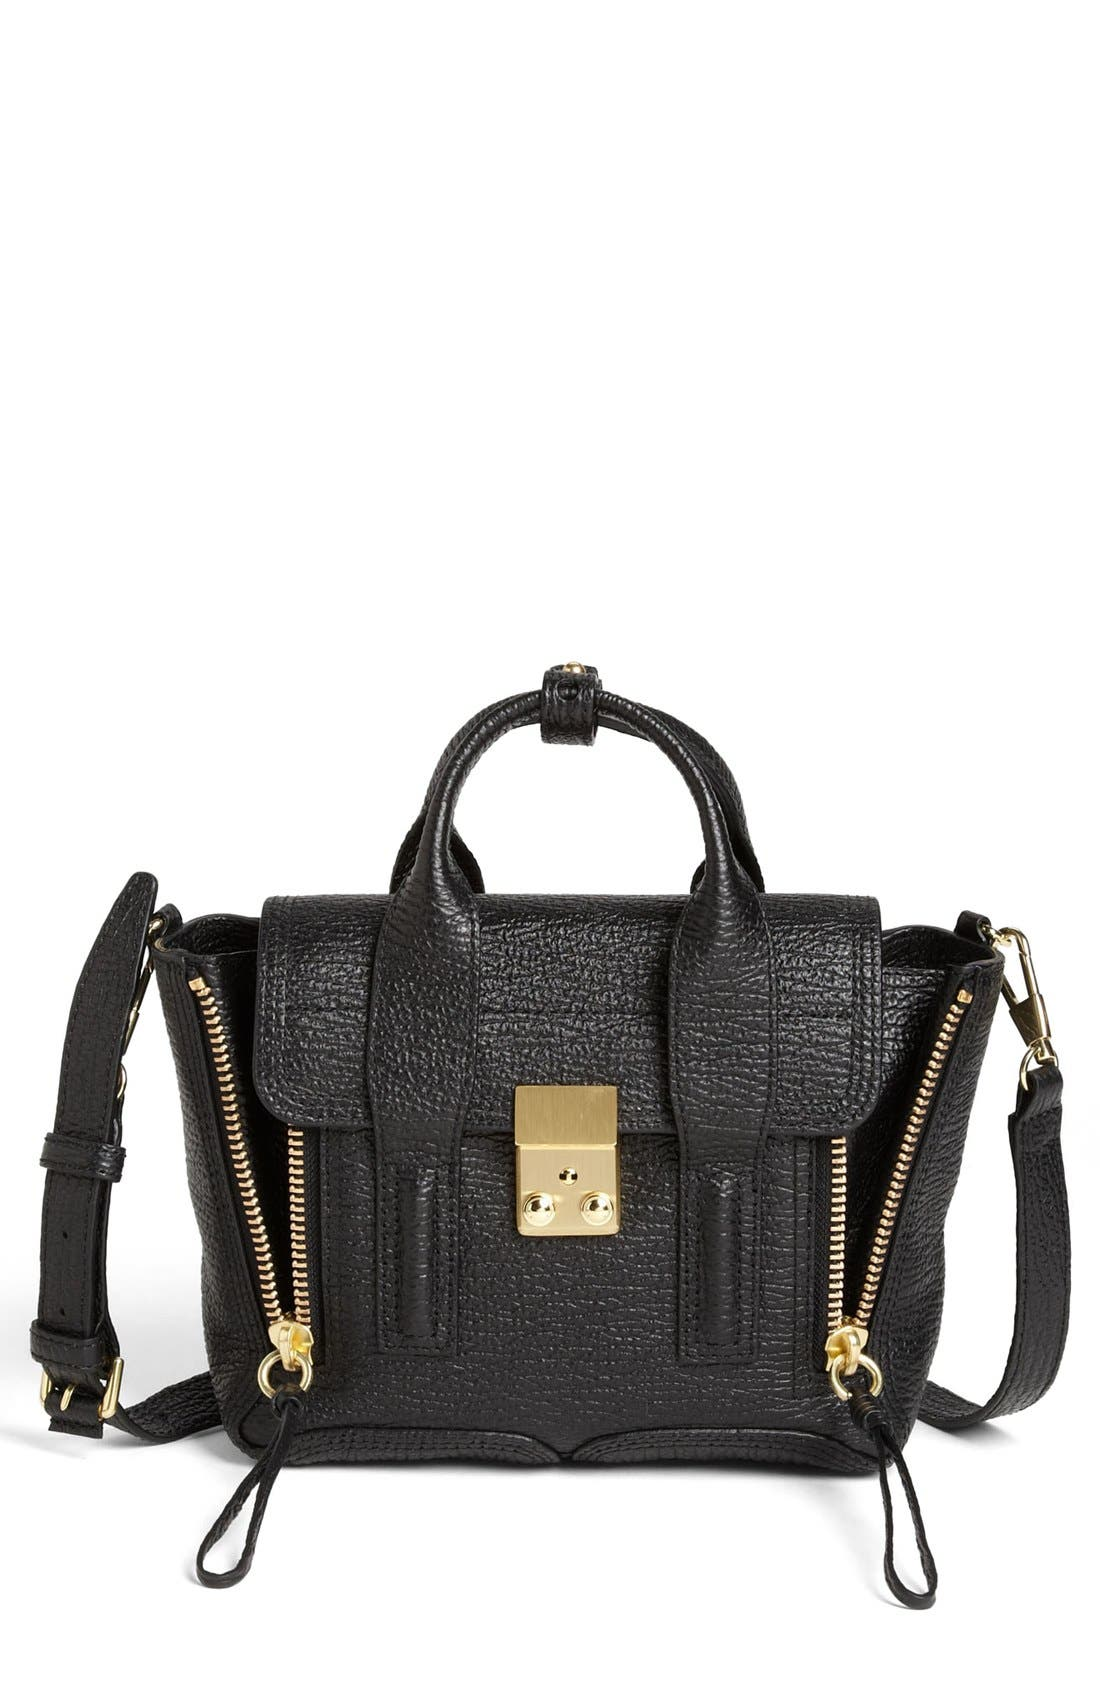 'Mini Pashli' Leather Satchel,                             Main thumbnail 1, color,                             BLACK/ GOLD HDWR